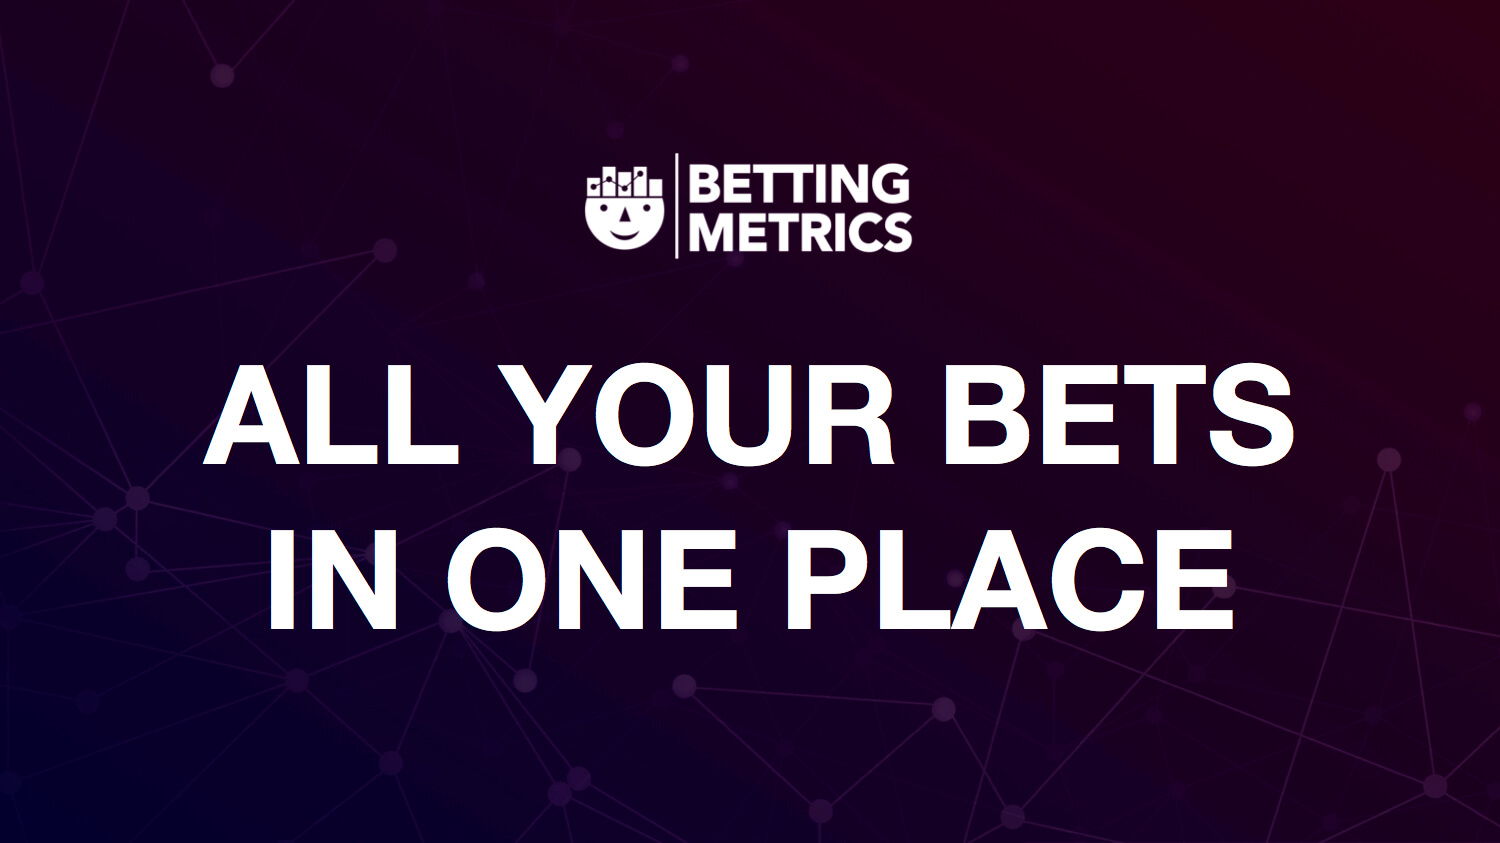 betting site bettingmetrics 1